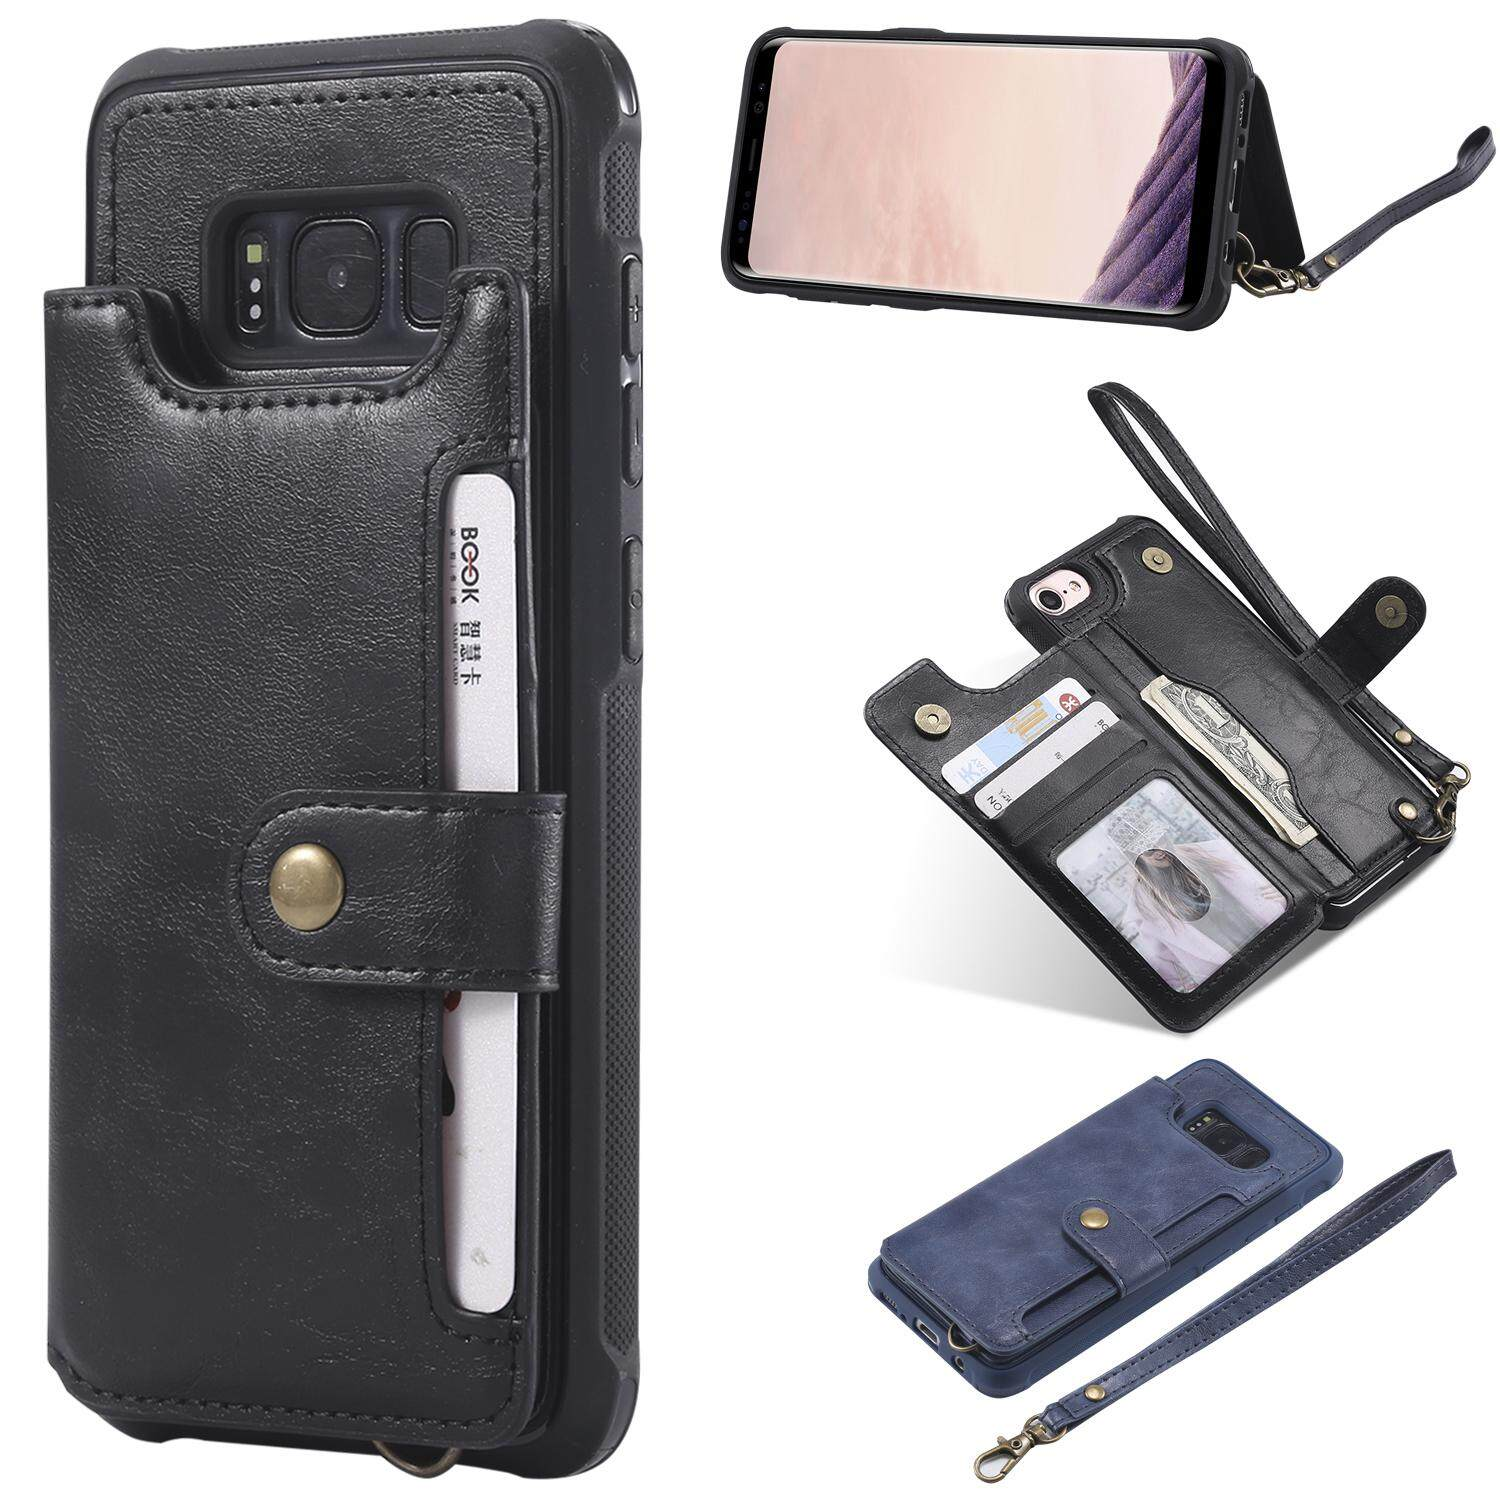 Samsung Galaxy S8 Wallet Case Universal Multifunctional Flip Cover for Samsung Galaxy S8 with Strap